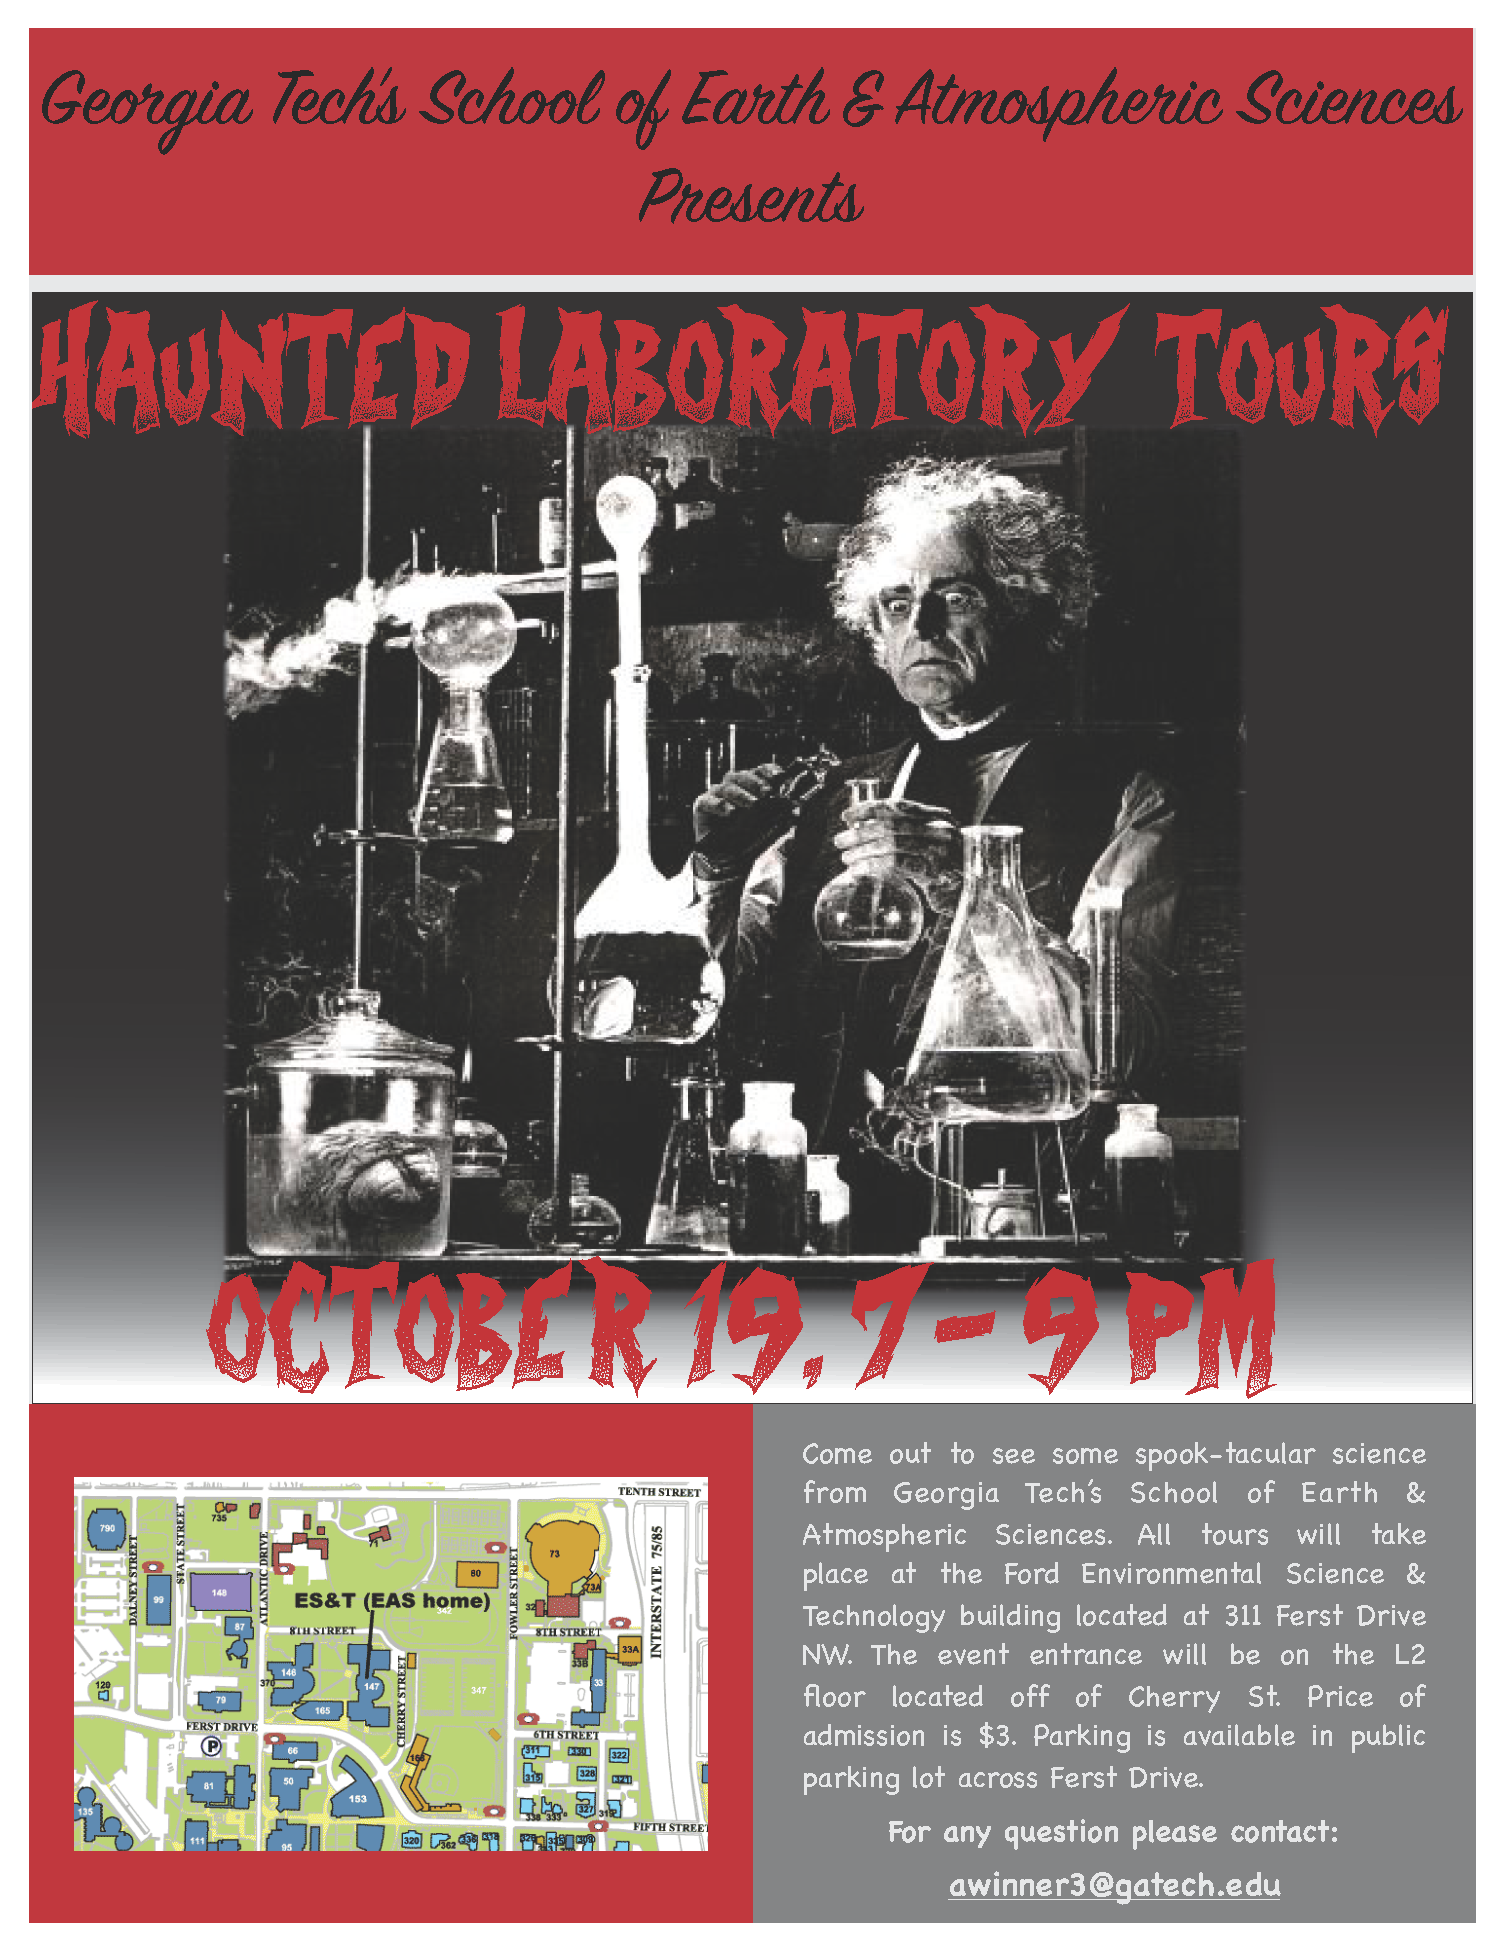 Early-Halloween Lab Tour